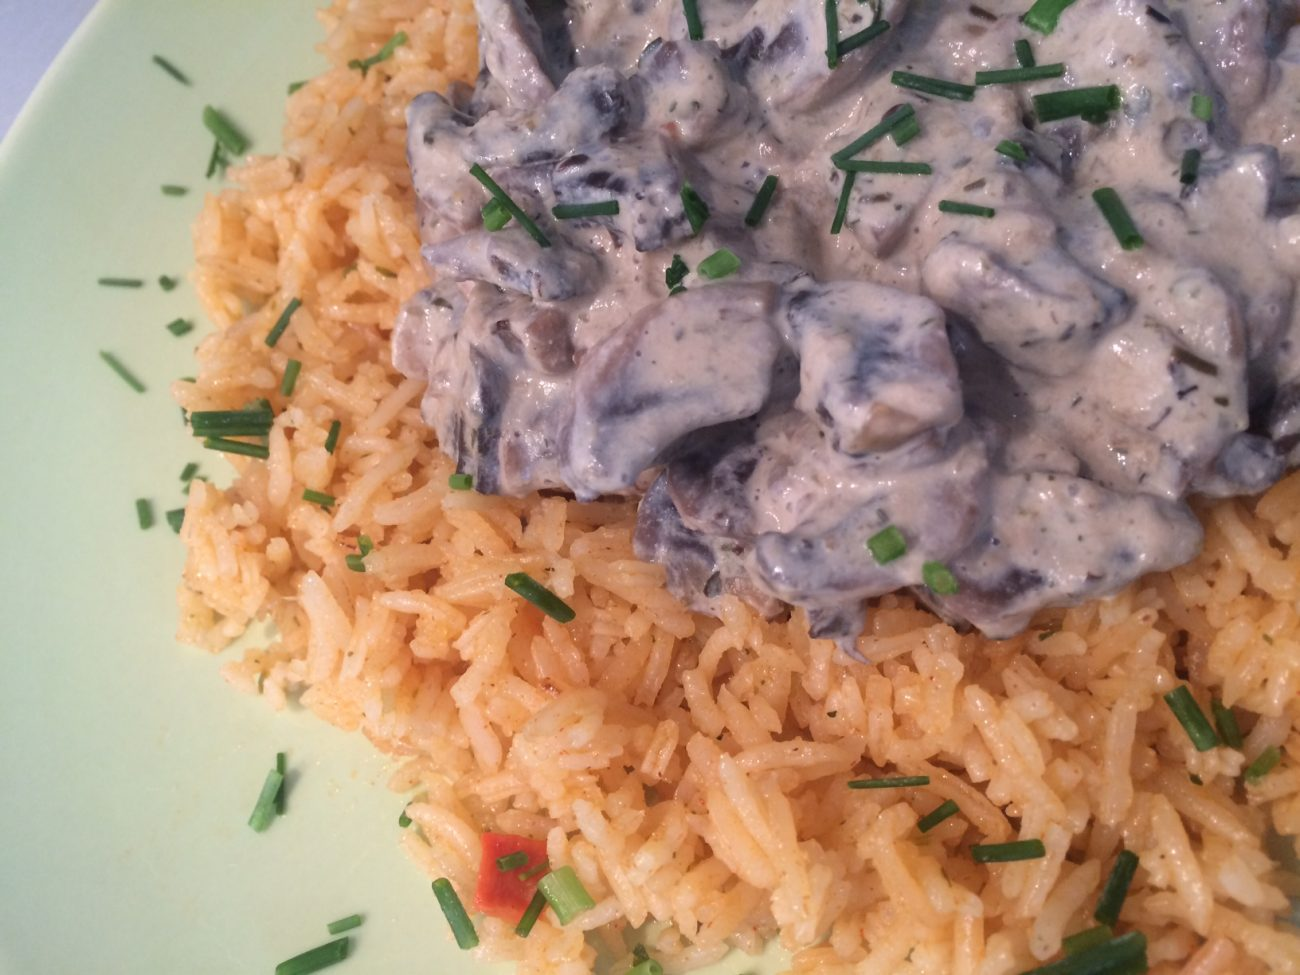 Red rice with creamed mushrooms